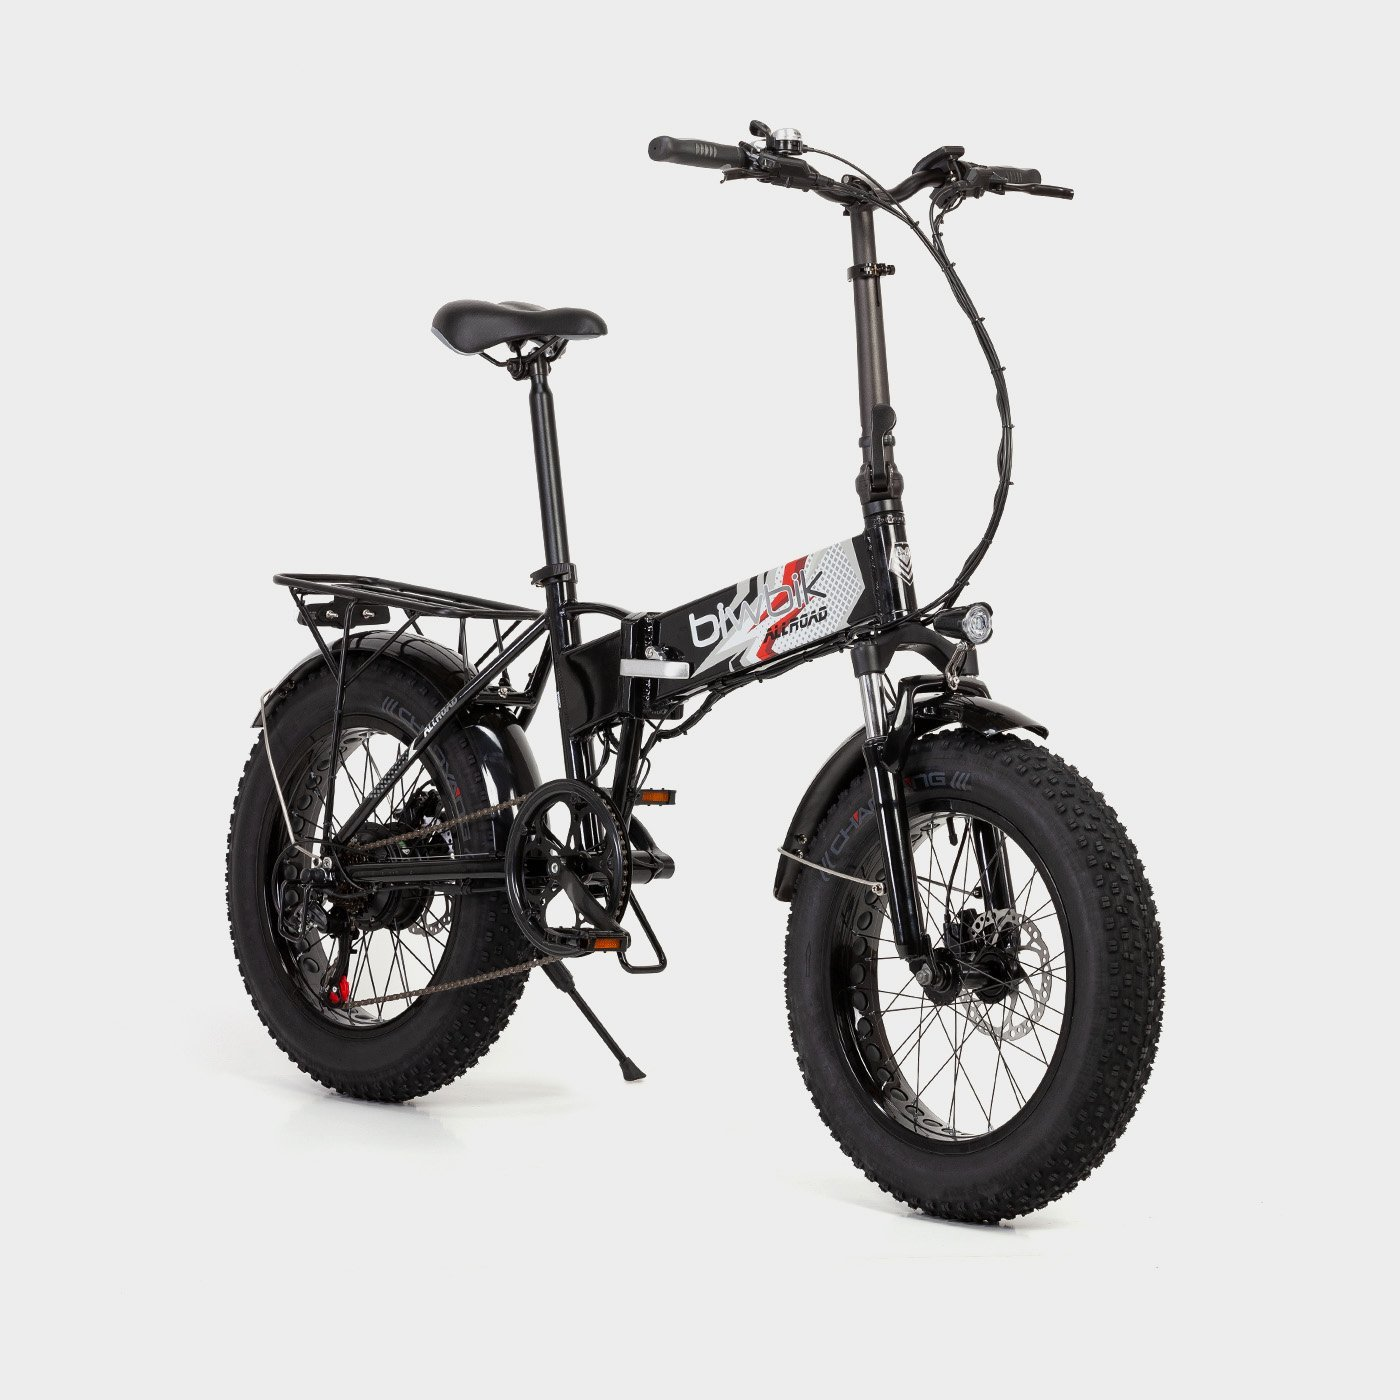 Bicicleta eléctrica plegable Biwbik All Road black